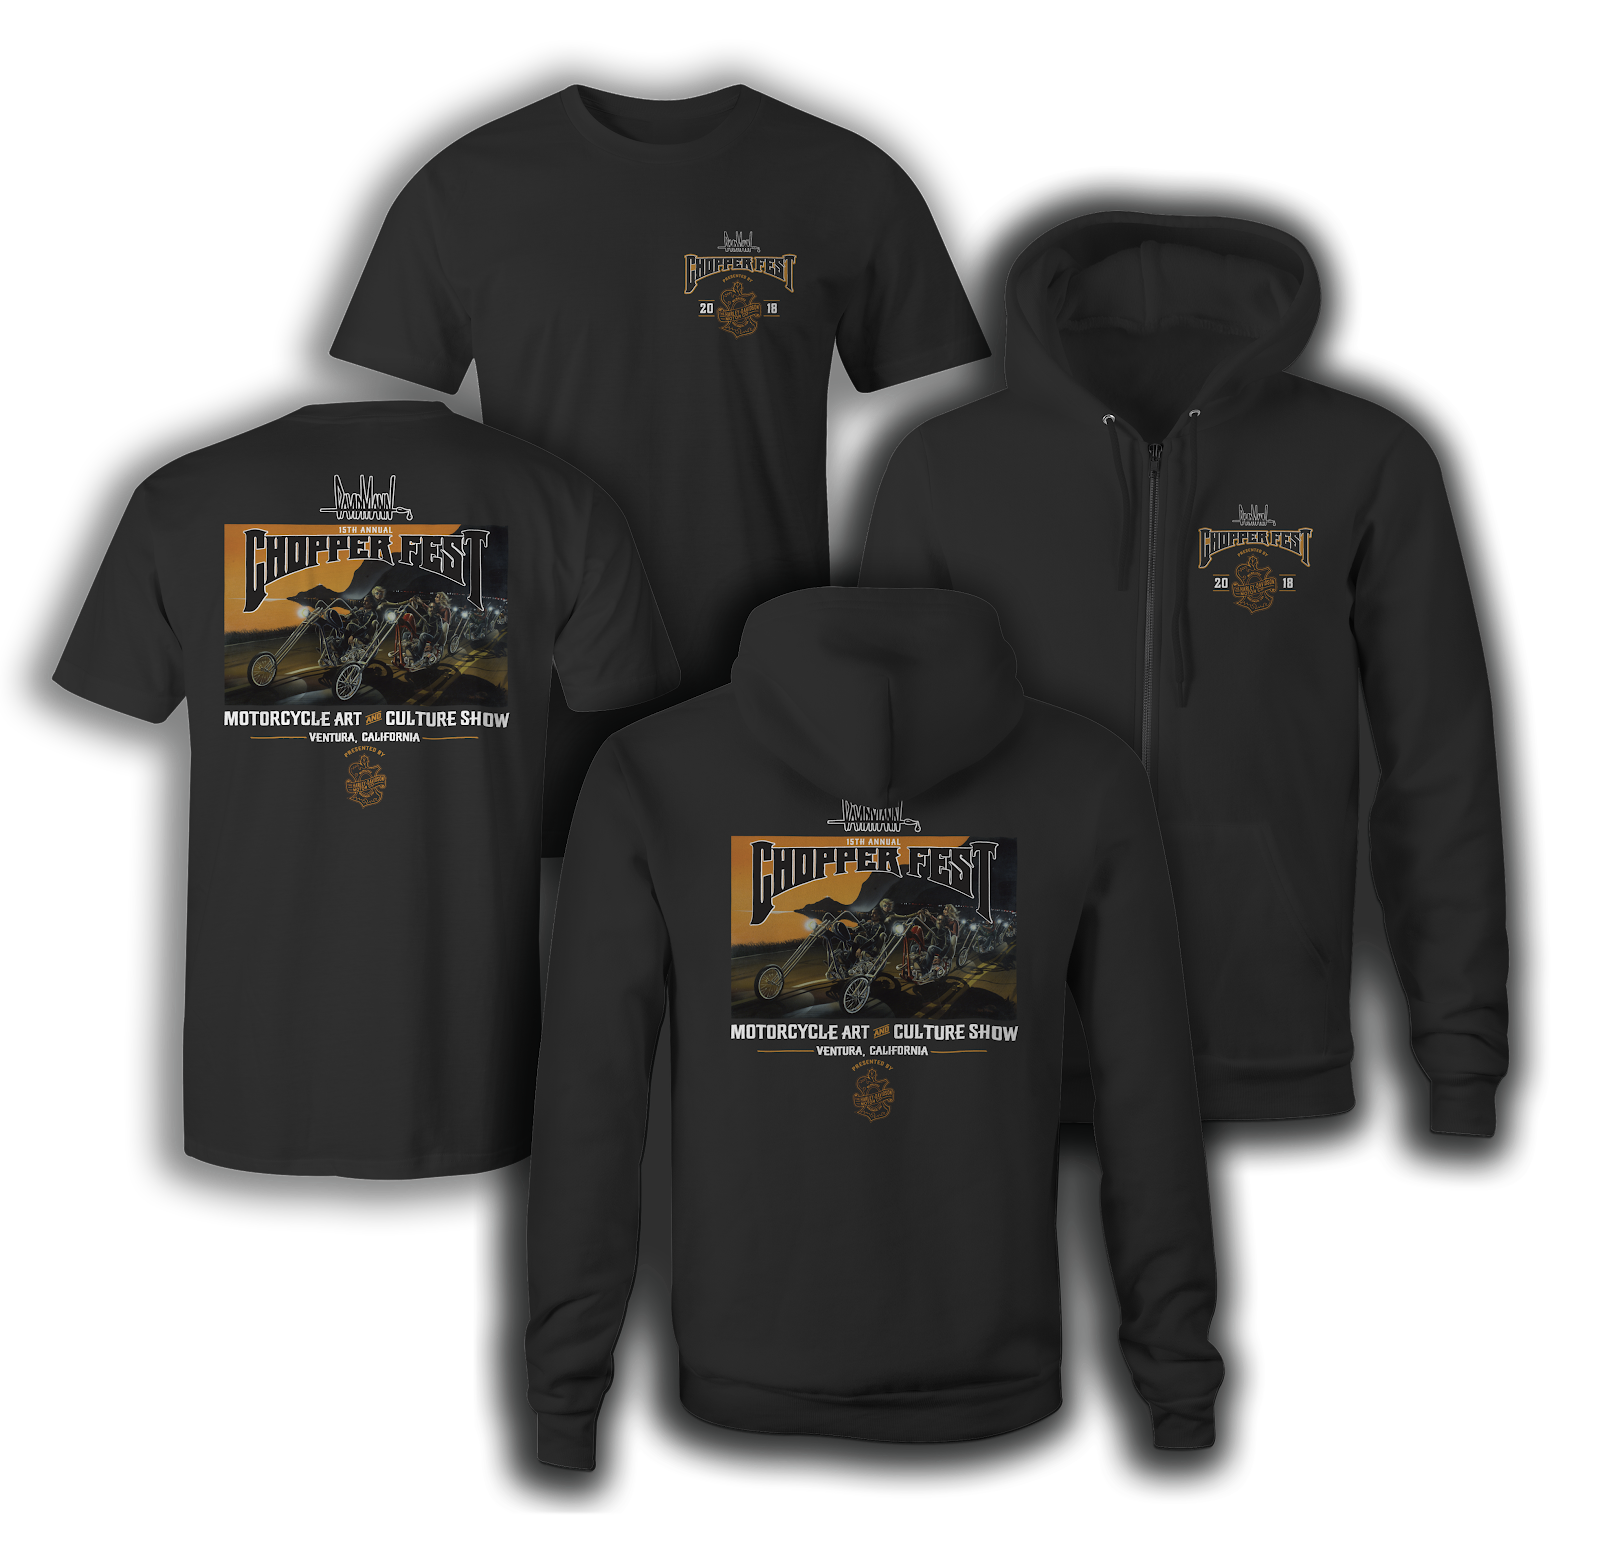 15th Annual Event T-shirts and Hoodies